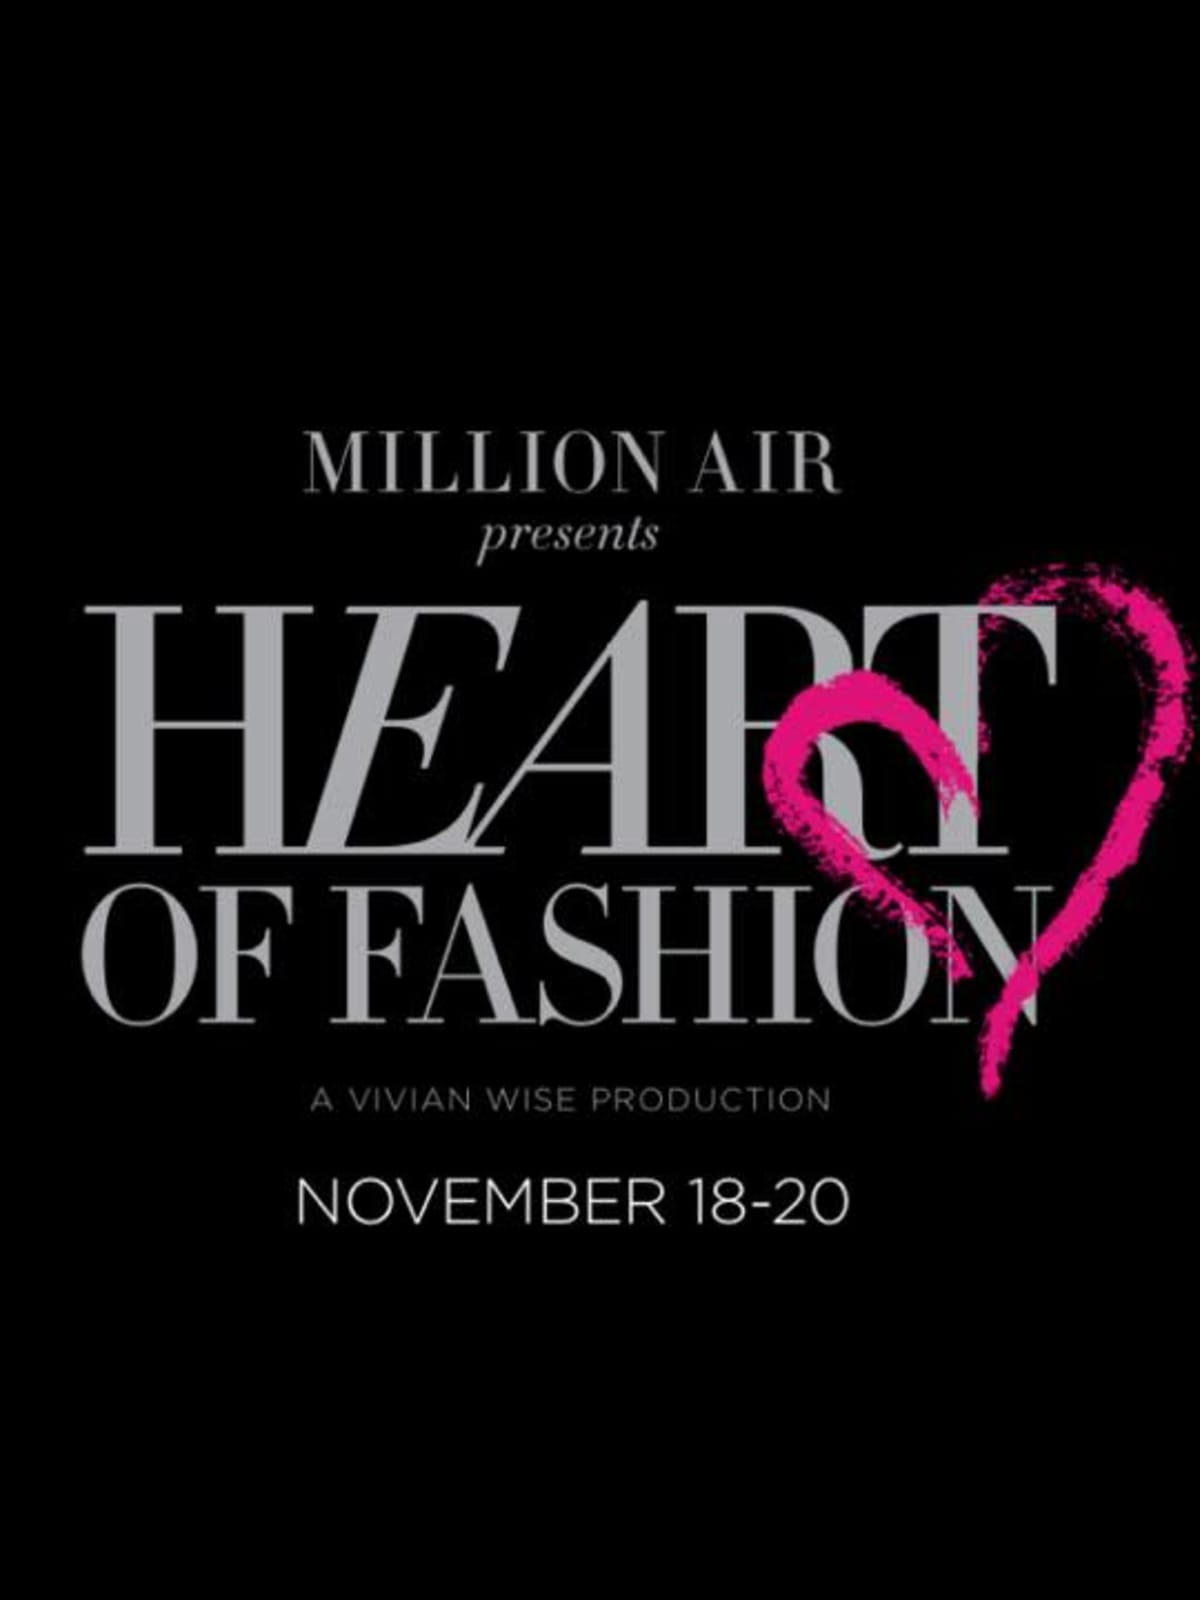 Houston s to the Heart of Fashion with designer runway